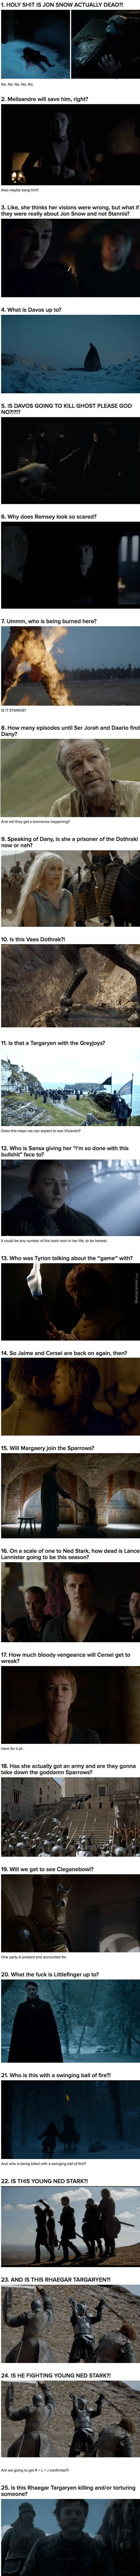 25 Questions We Have After Watching The Game Of Thrones Season 6 Trailer